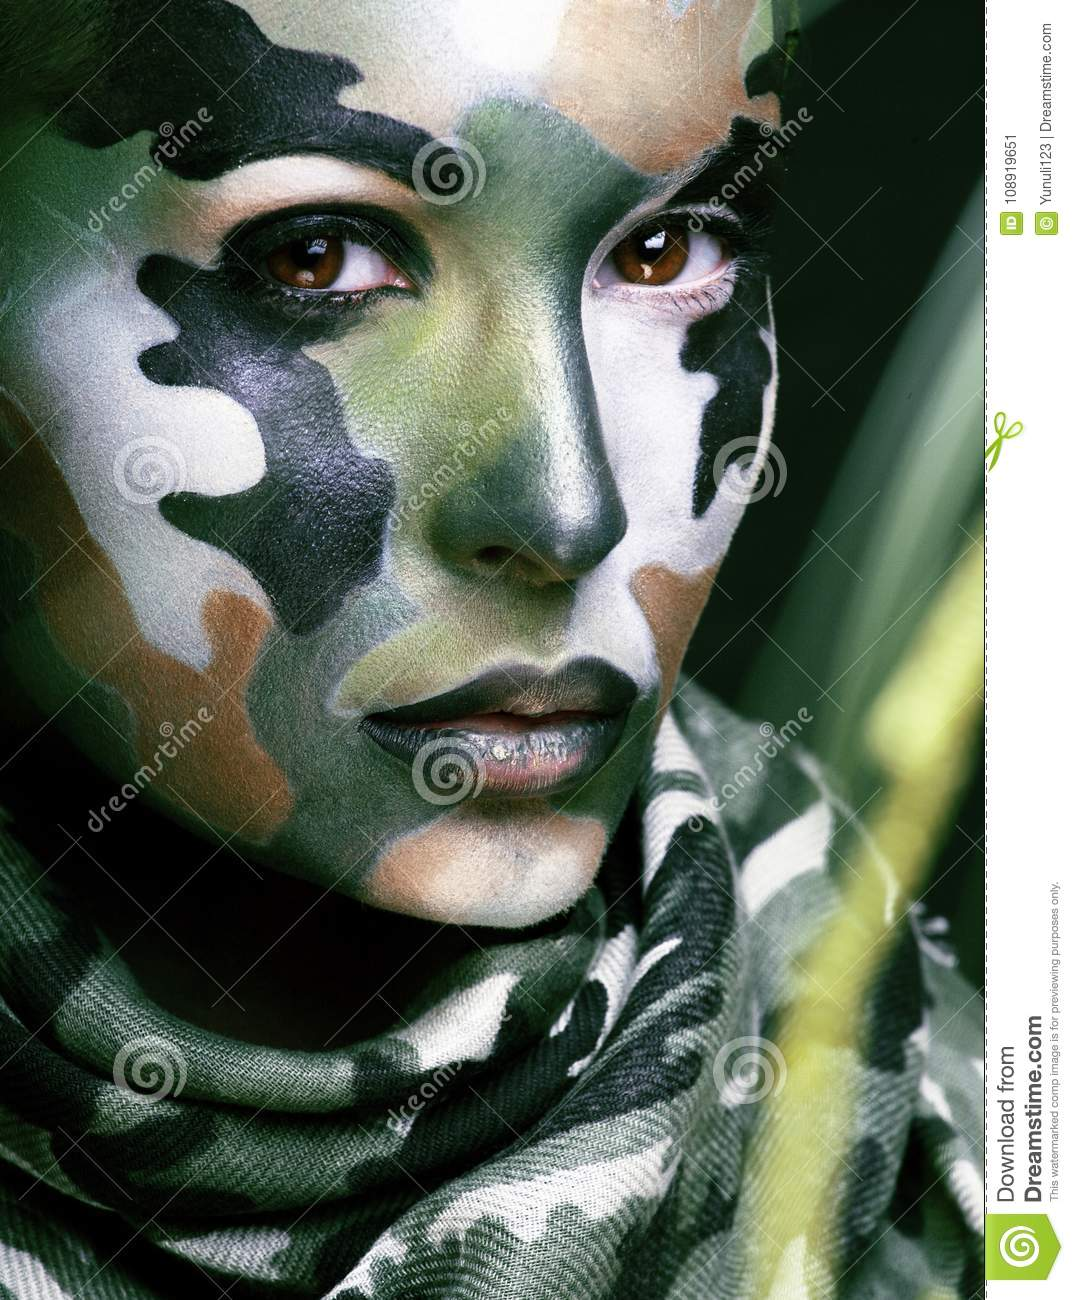 Military body paint women